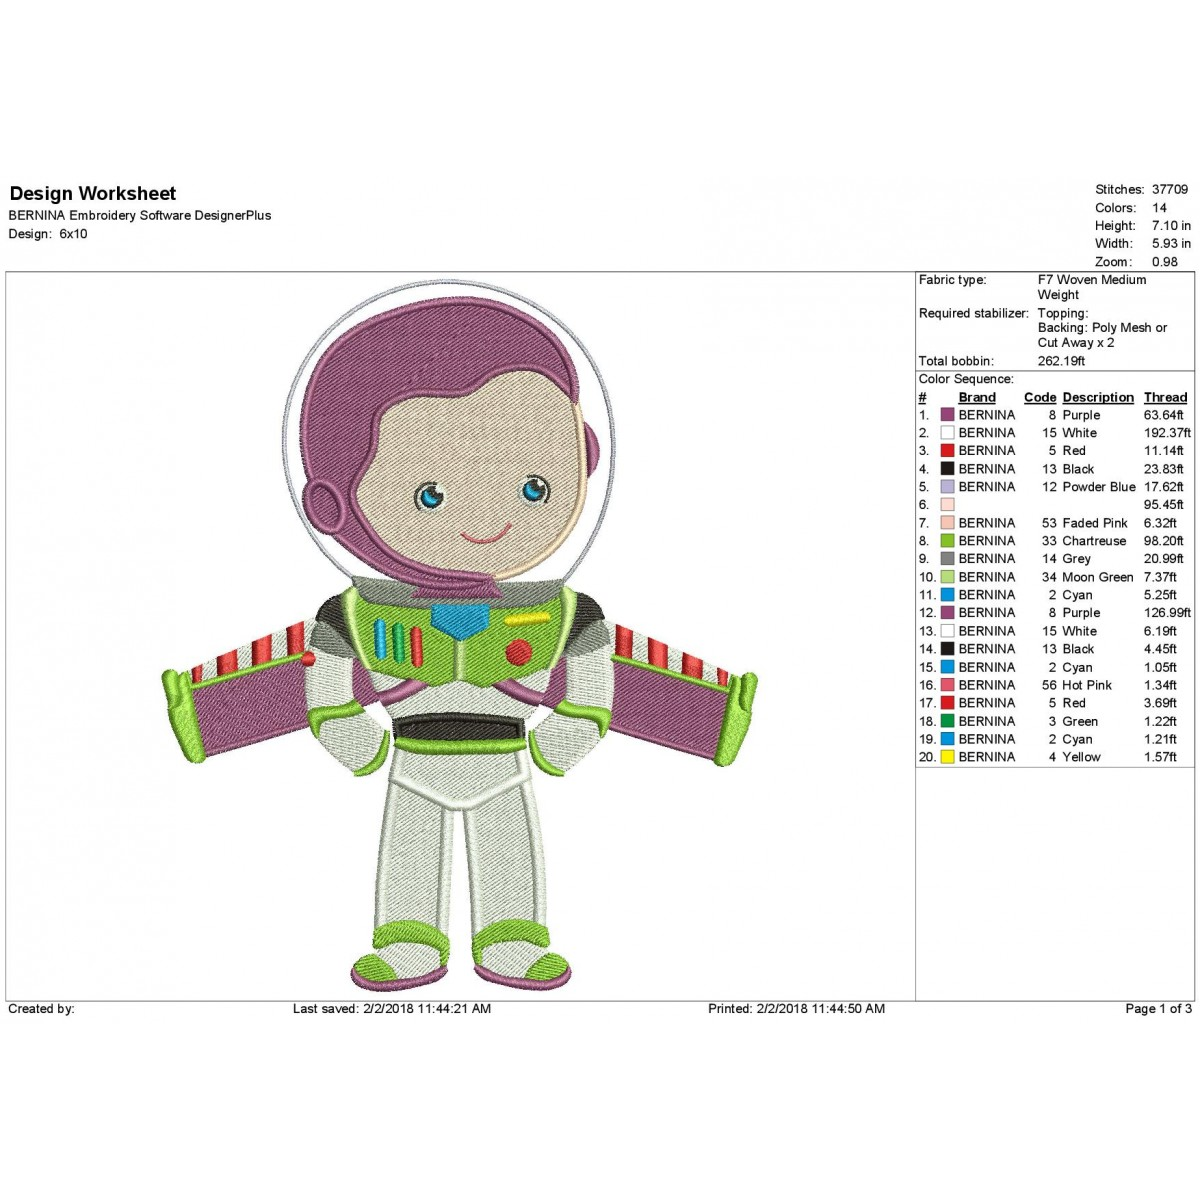 Buzz Lightyear Toy Story Embroidery Design